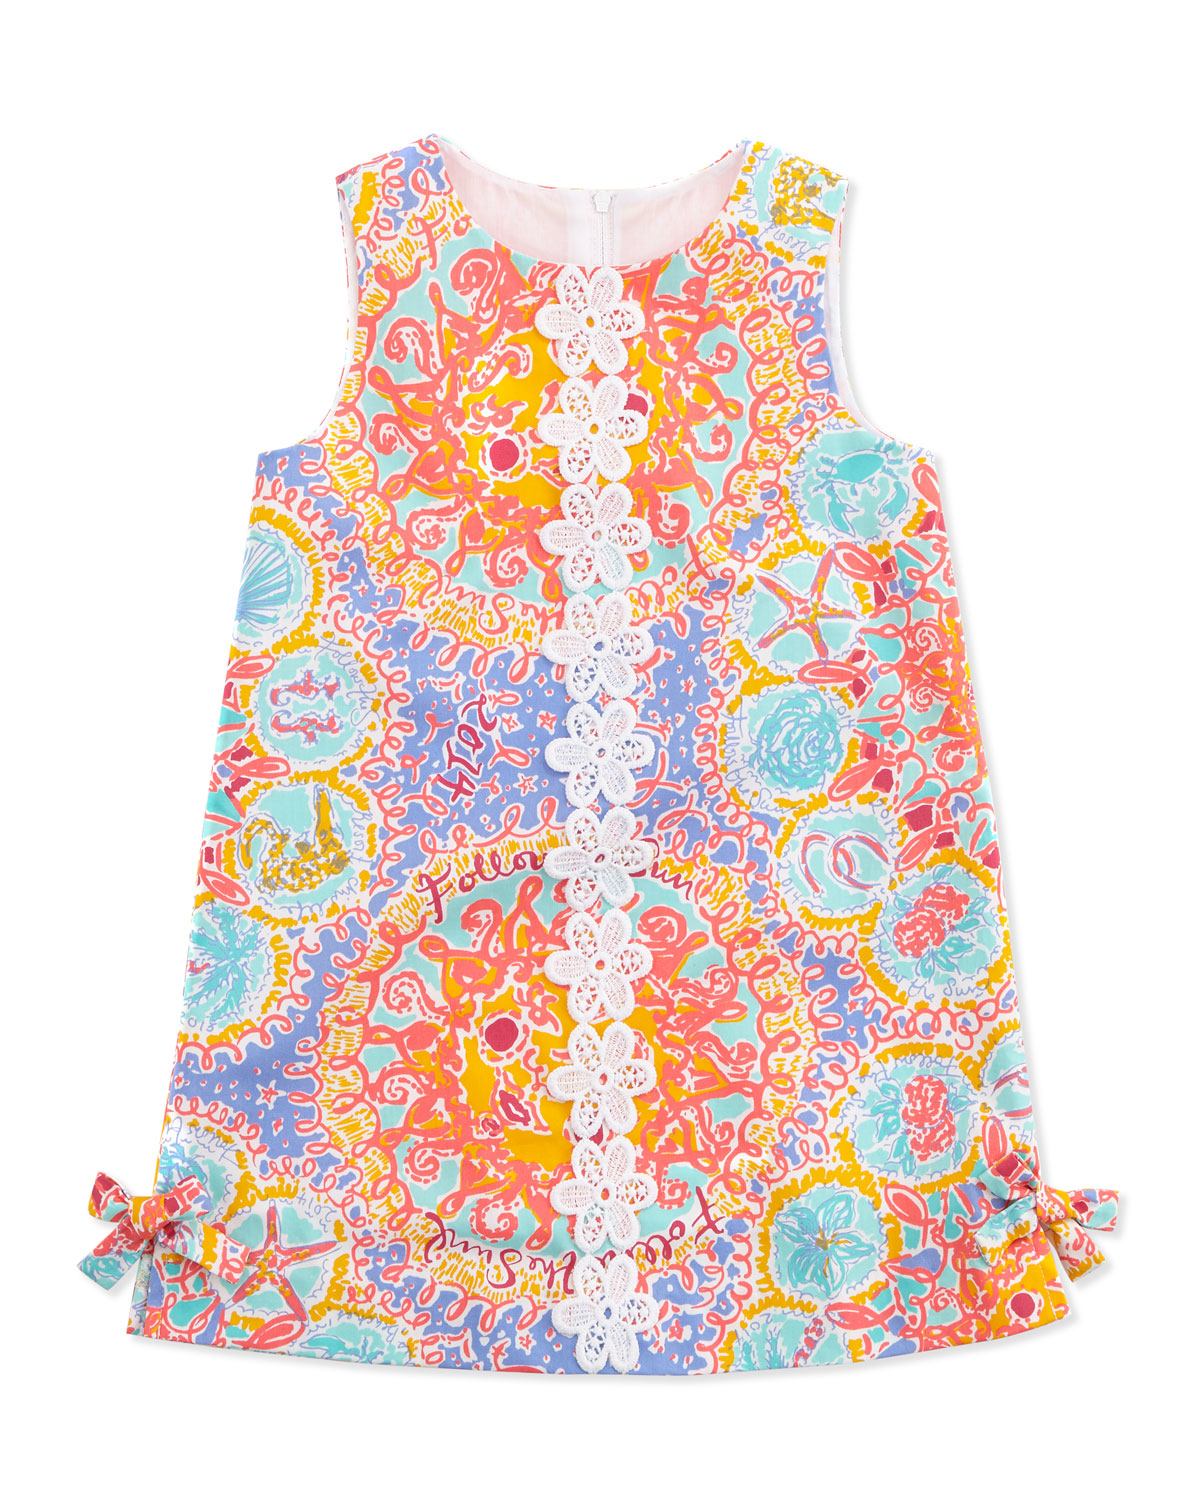 Lilly Pulitzer Classic Shift Dress